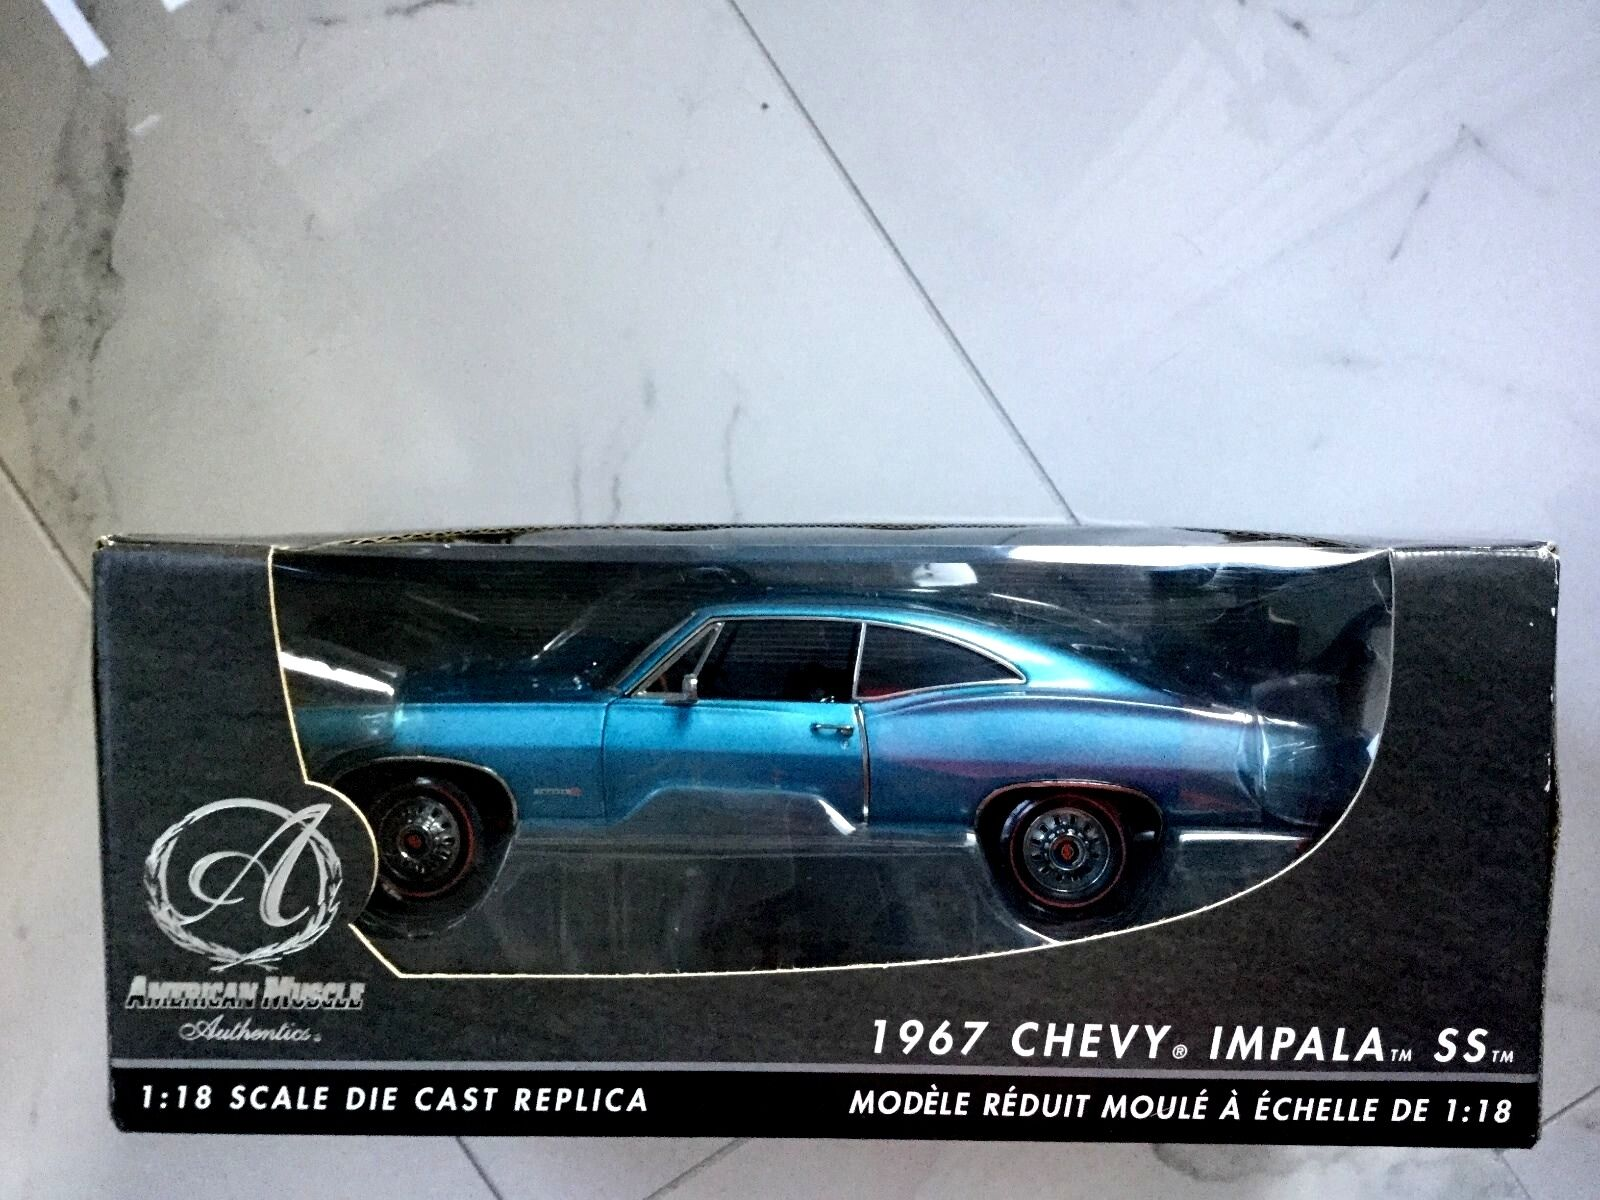 ERTL 1 18 AMERICAN MUSCLE AUTHENTICS 1967 CHEVROLET IMPALA SS 427 ITEM